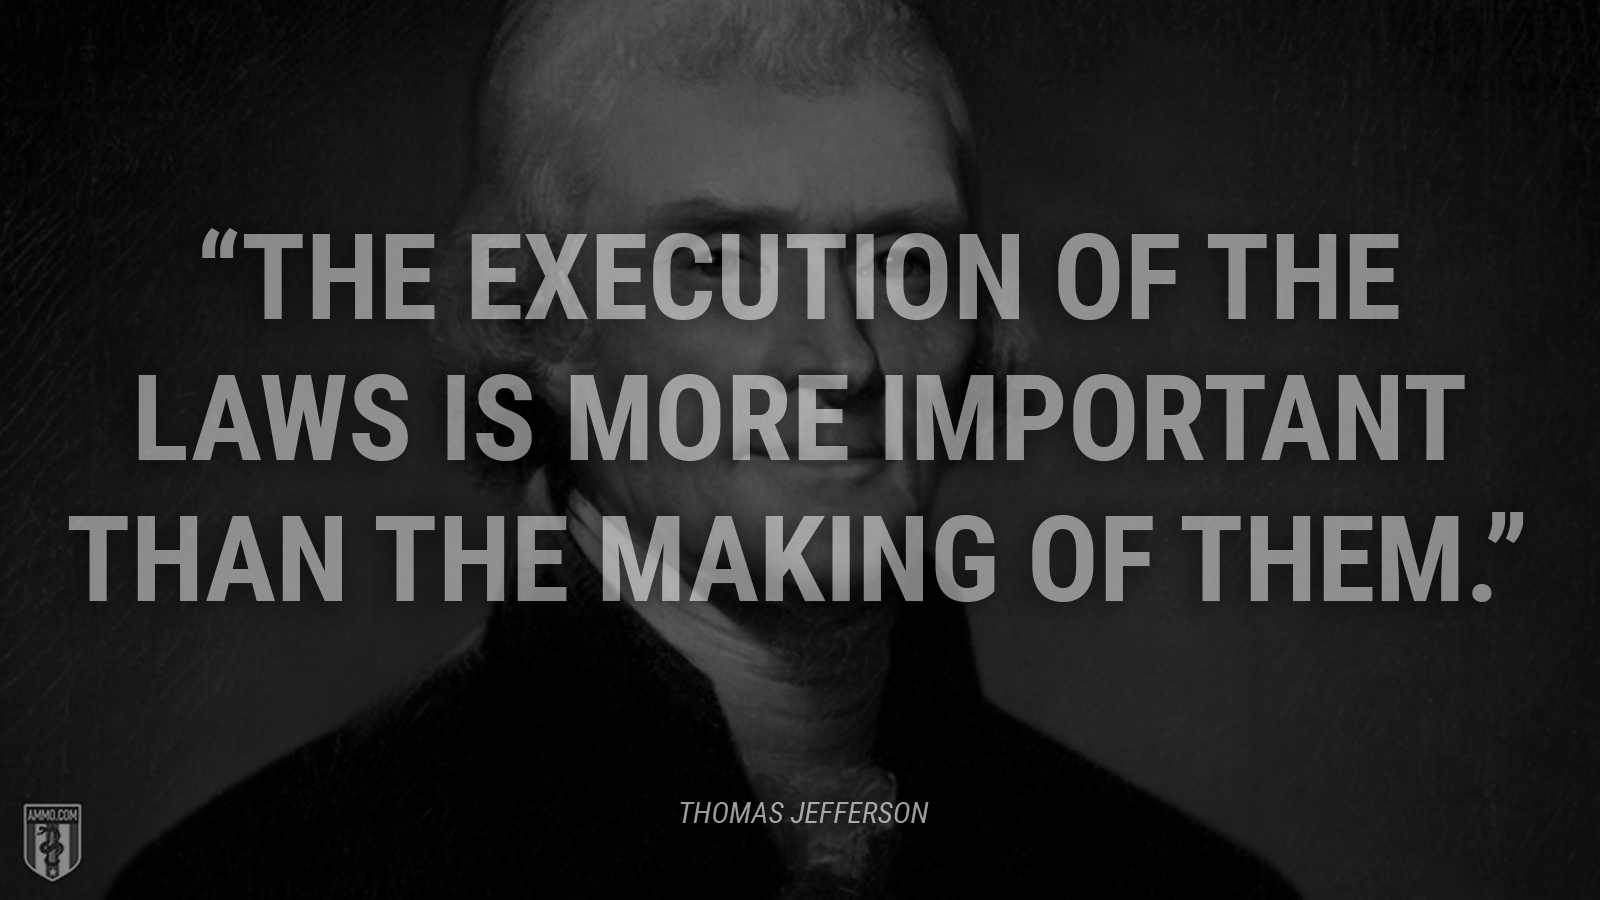 """""""The execution of the laws is more important than the making of them."""" - Thomas Jefferson"""